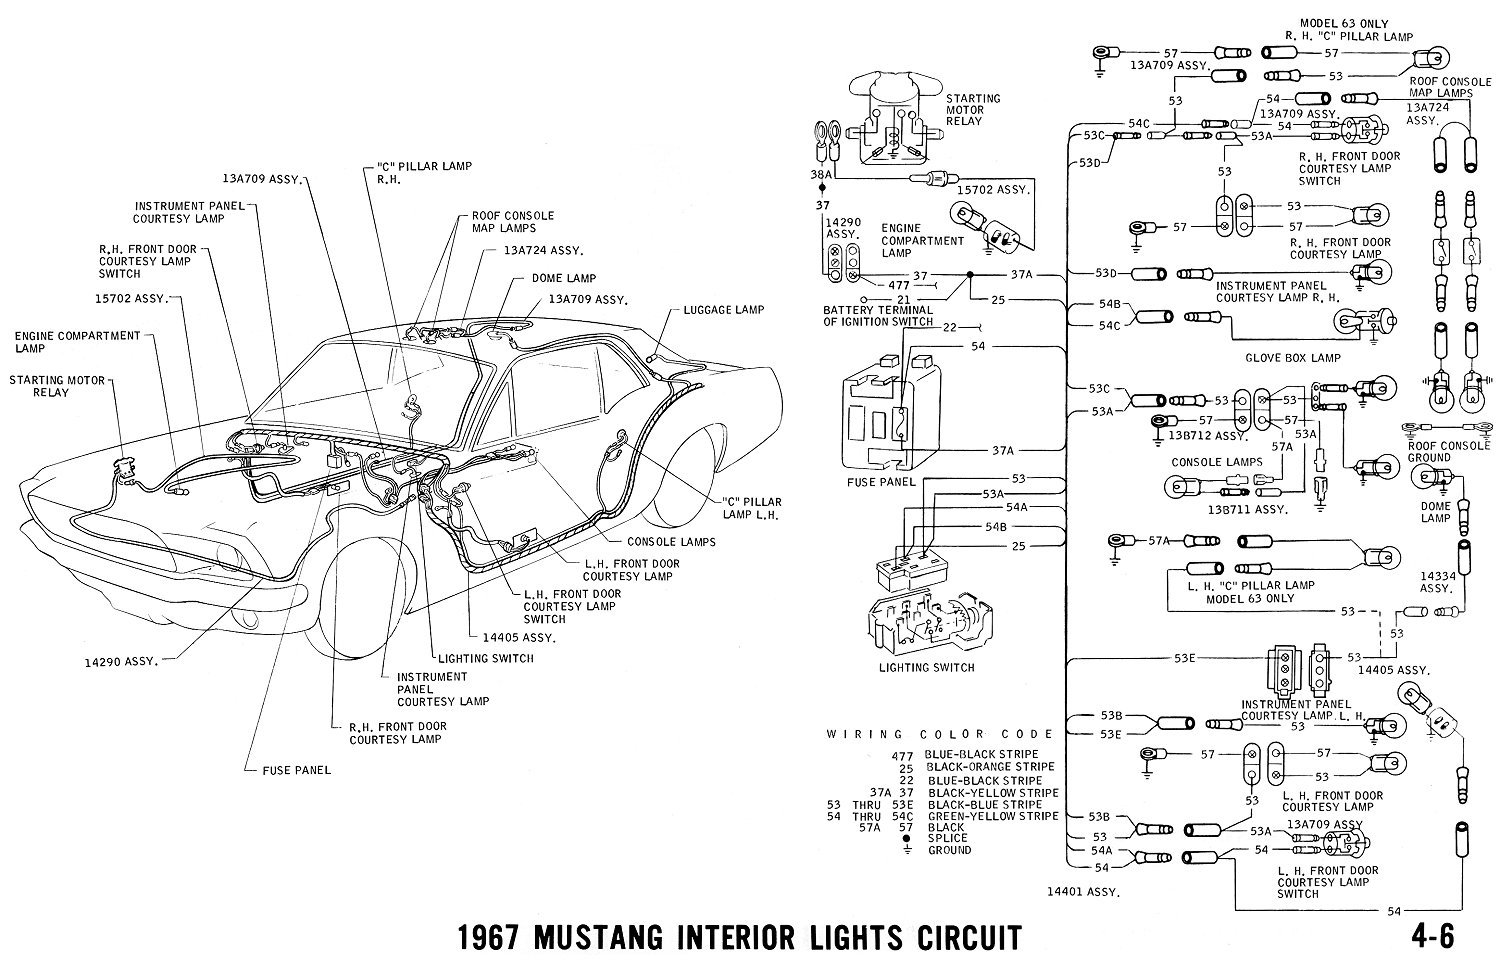 68 mustang underdash wiring. looking at the wiring ... 2012 ford mustang courtesy light wiring